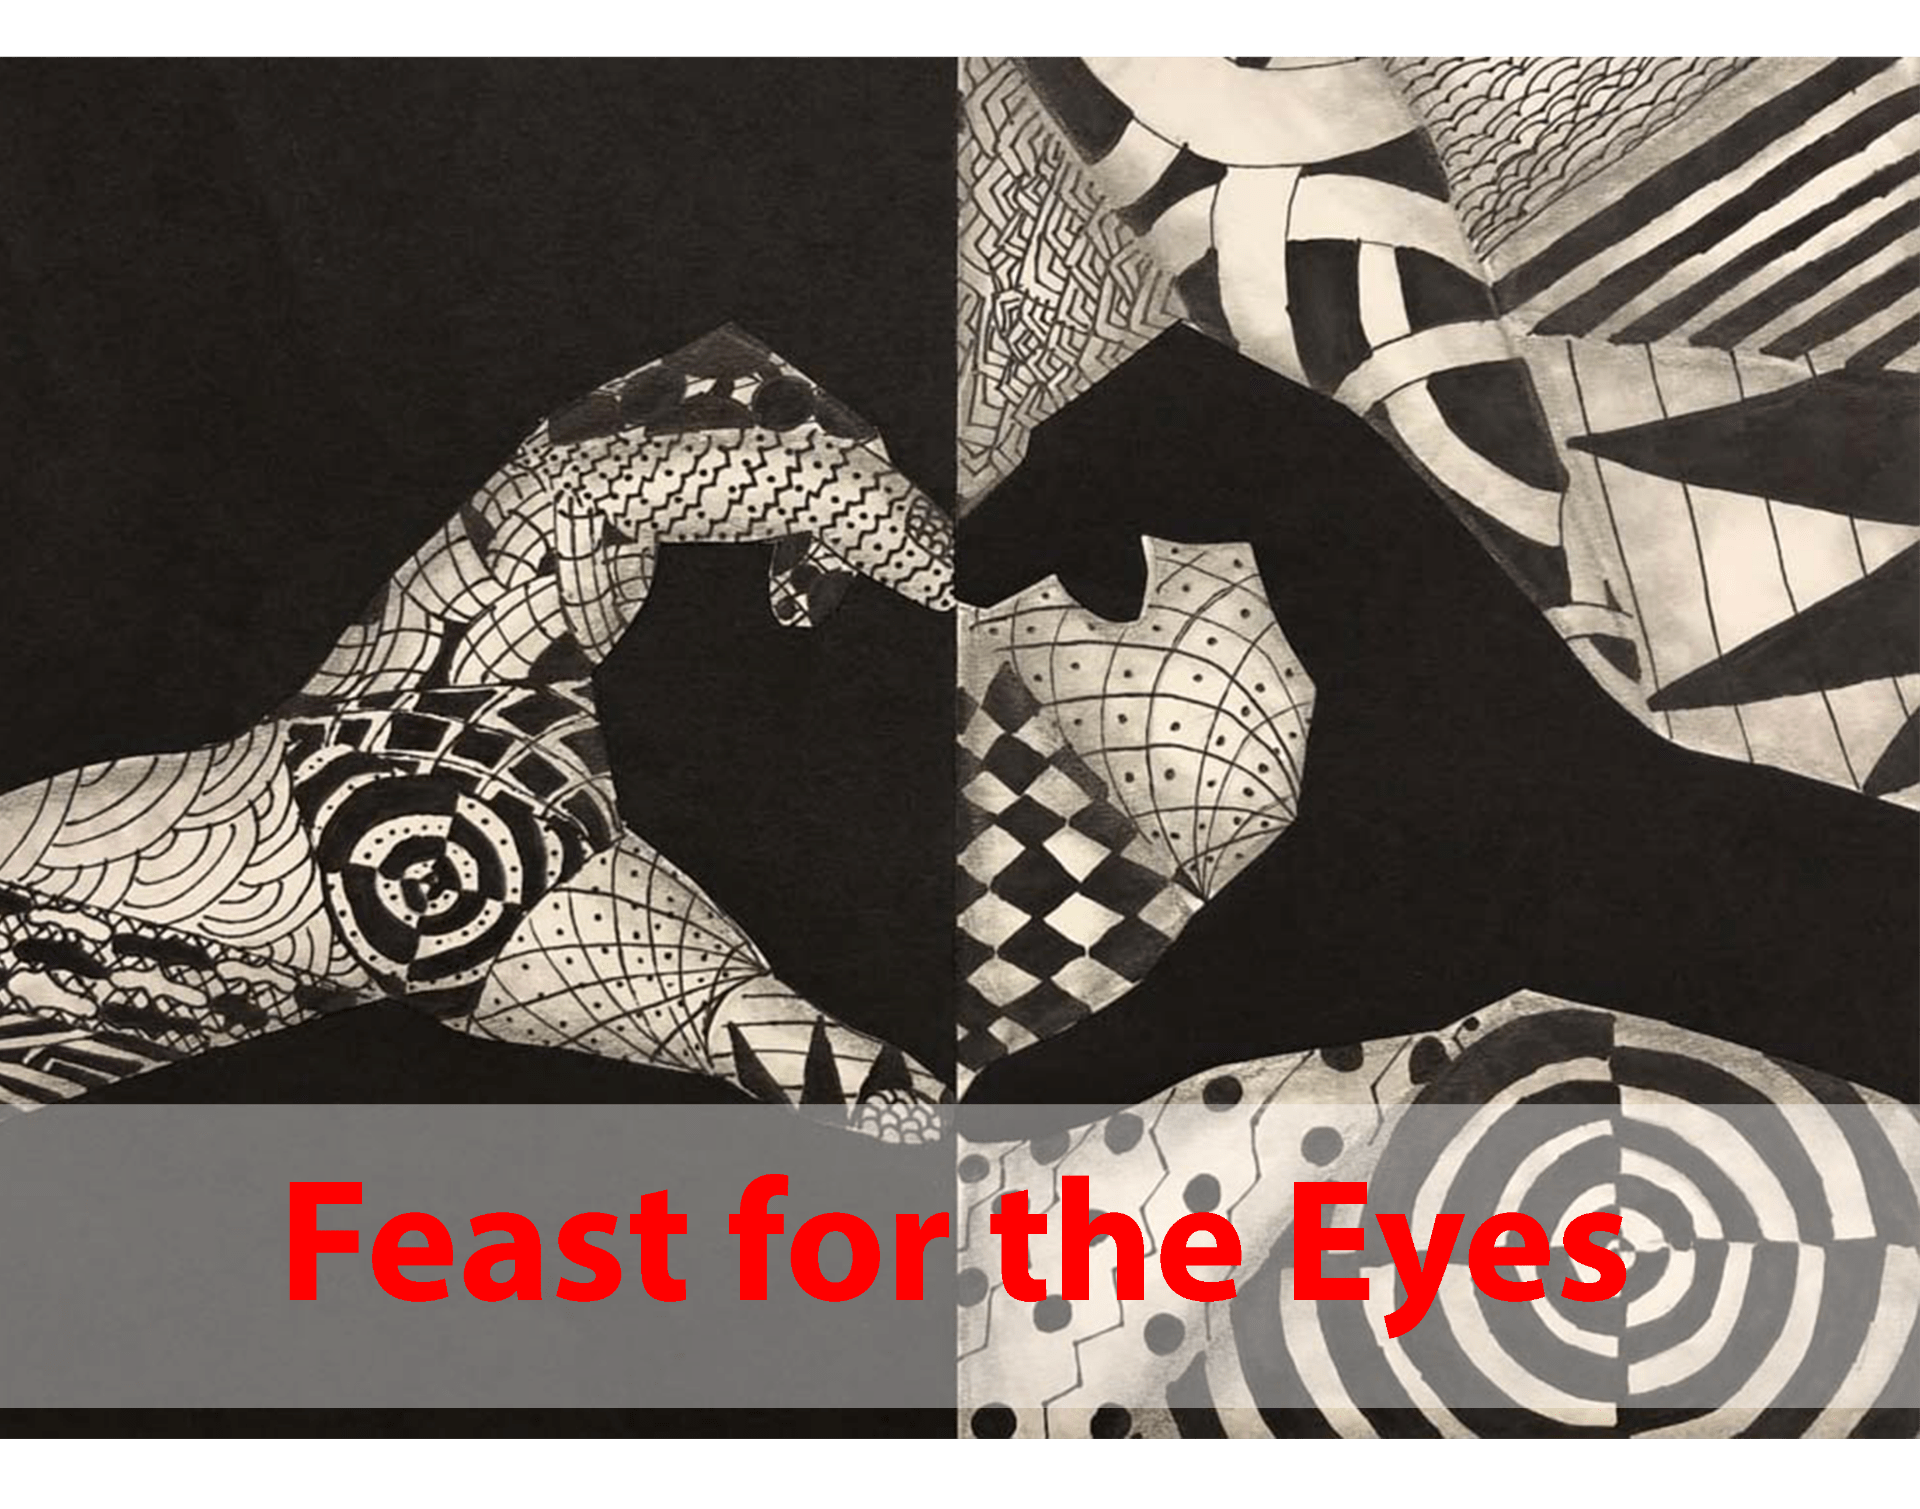 Feast for the Eyes: The 19th Annual Round Rock ISD Secondary Art Show